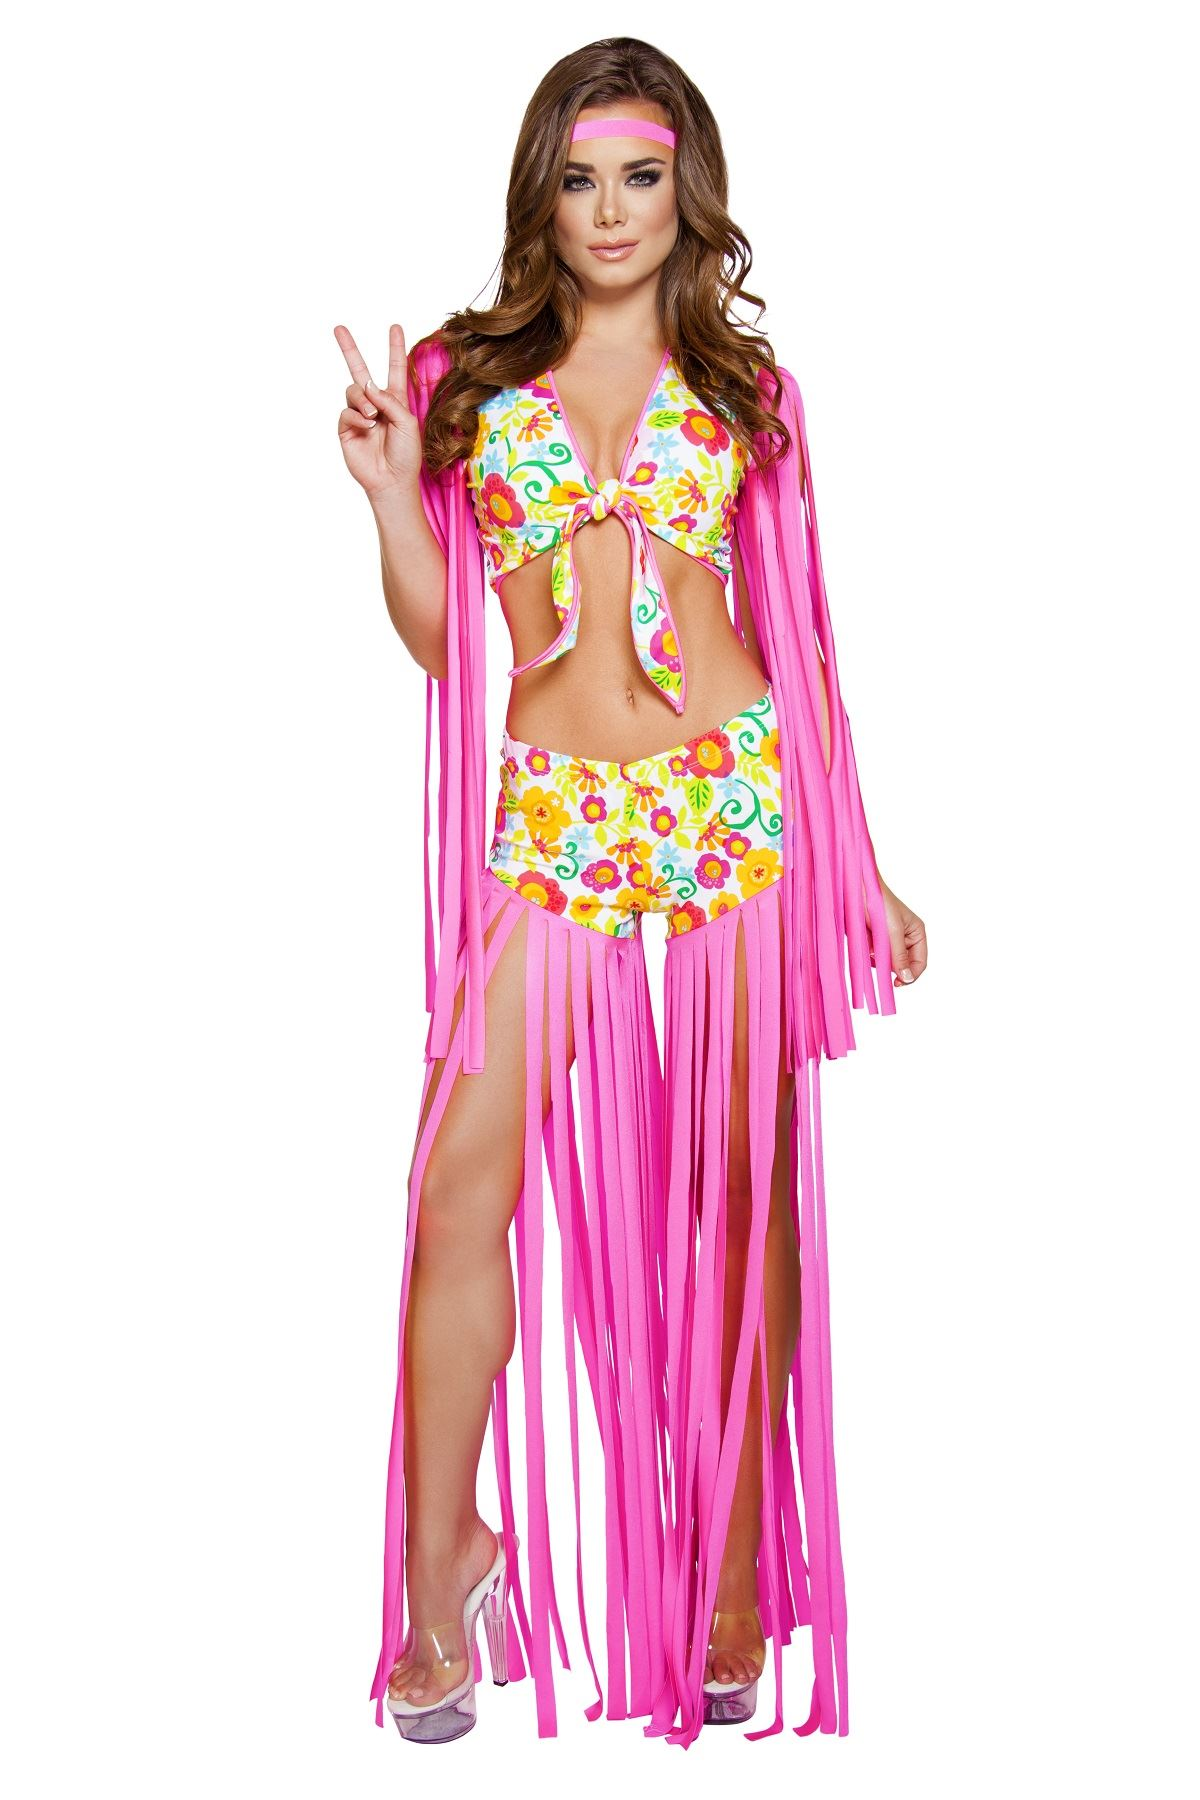 Adult Foxy Flower Child Woman Costume ...  sc 1 st  The Costume Land & Adult Foxy Flower Child Woman Costume | $67.99 | The Costume Land